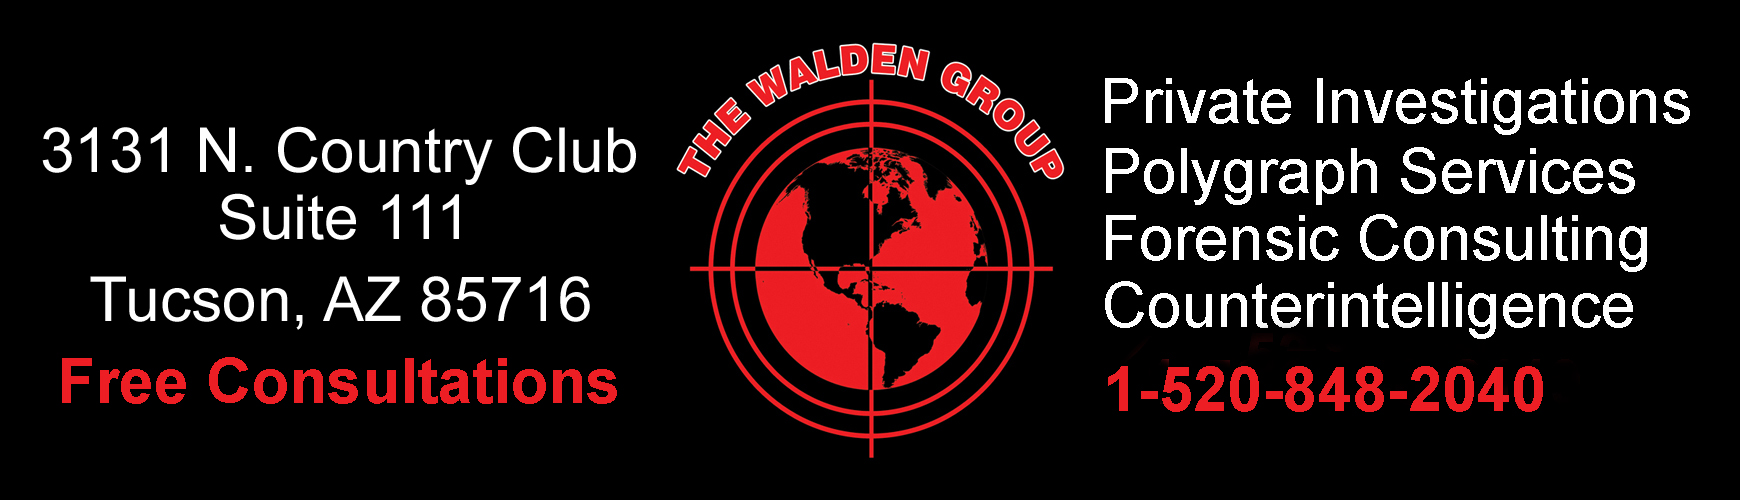 Walden Group LLC